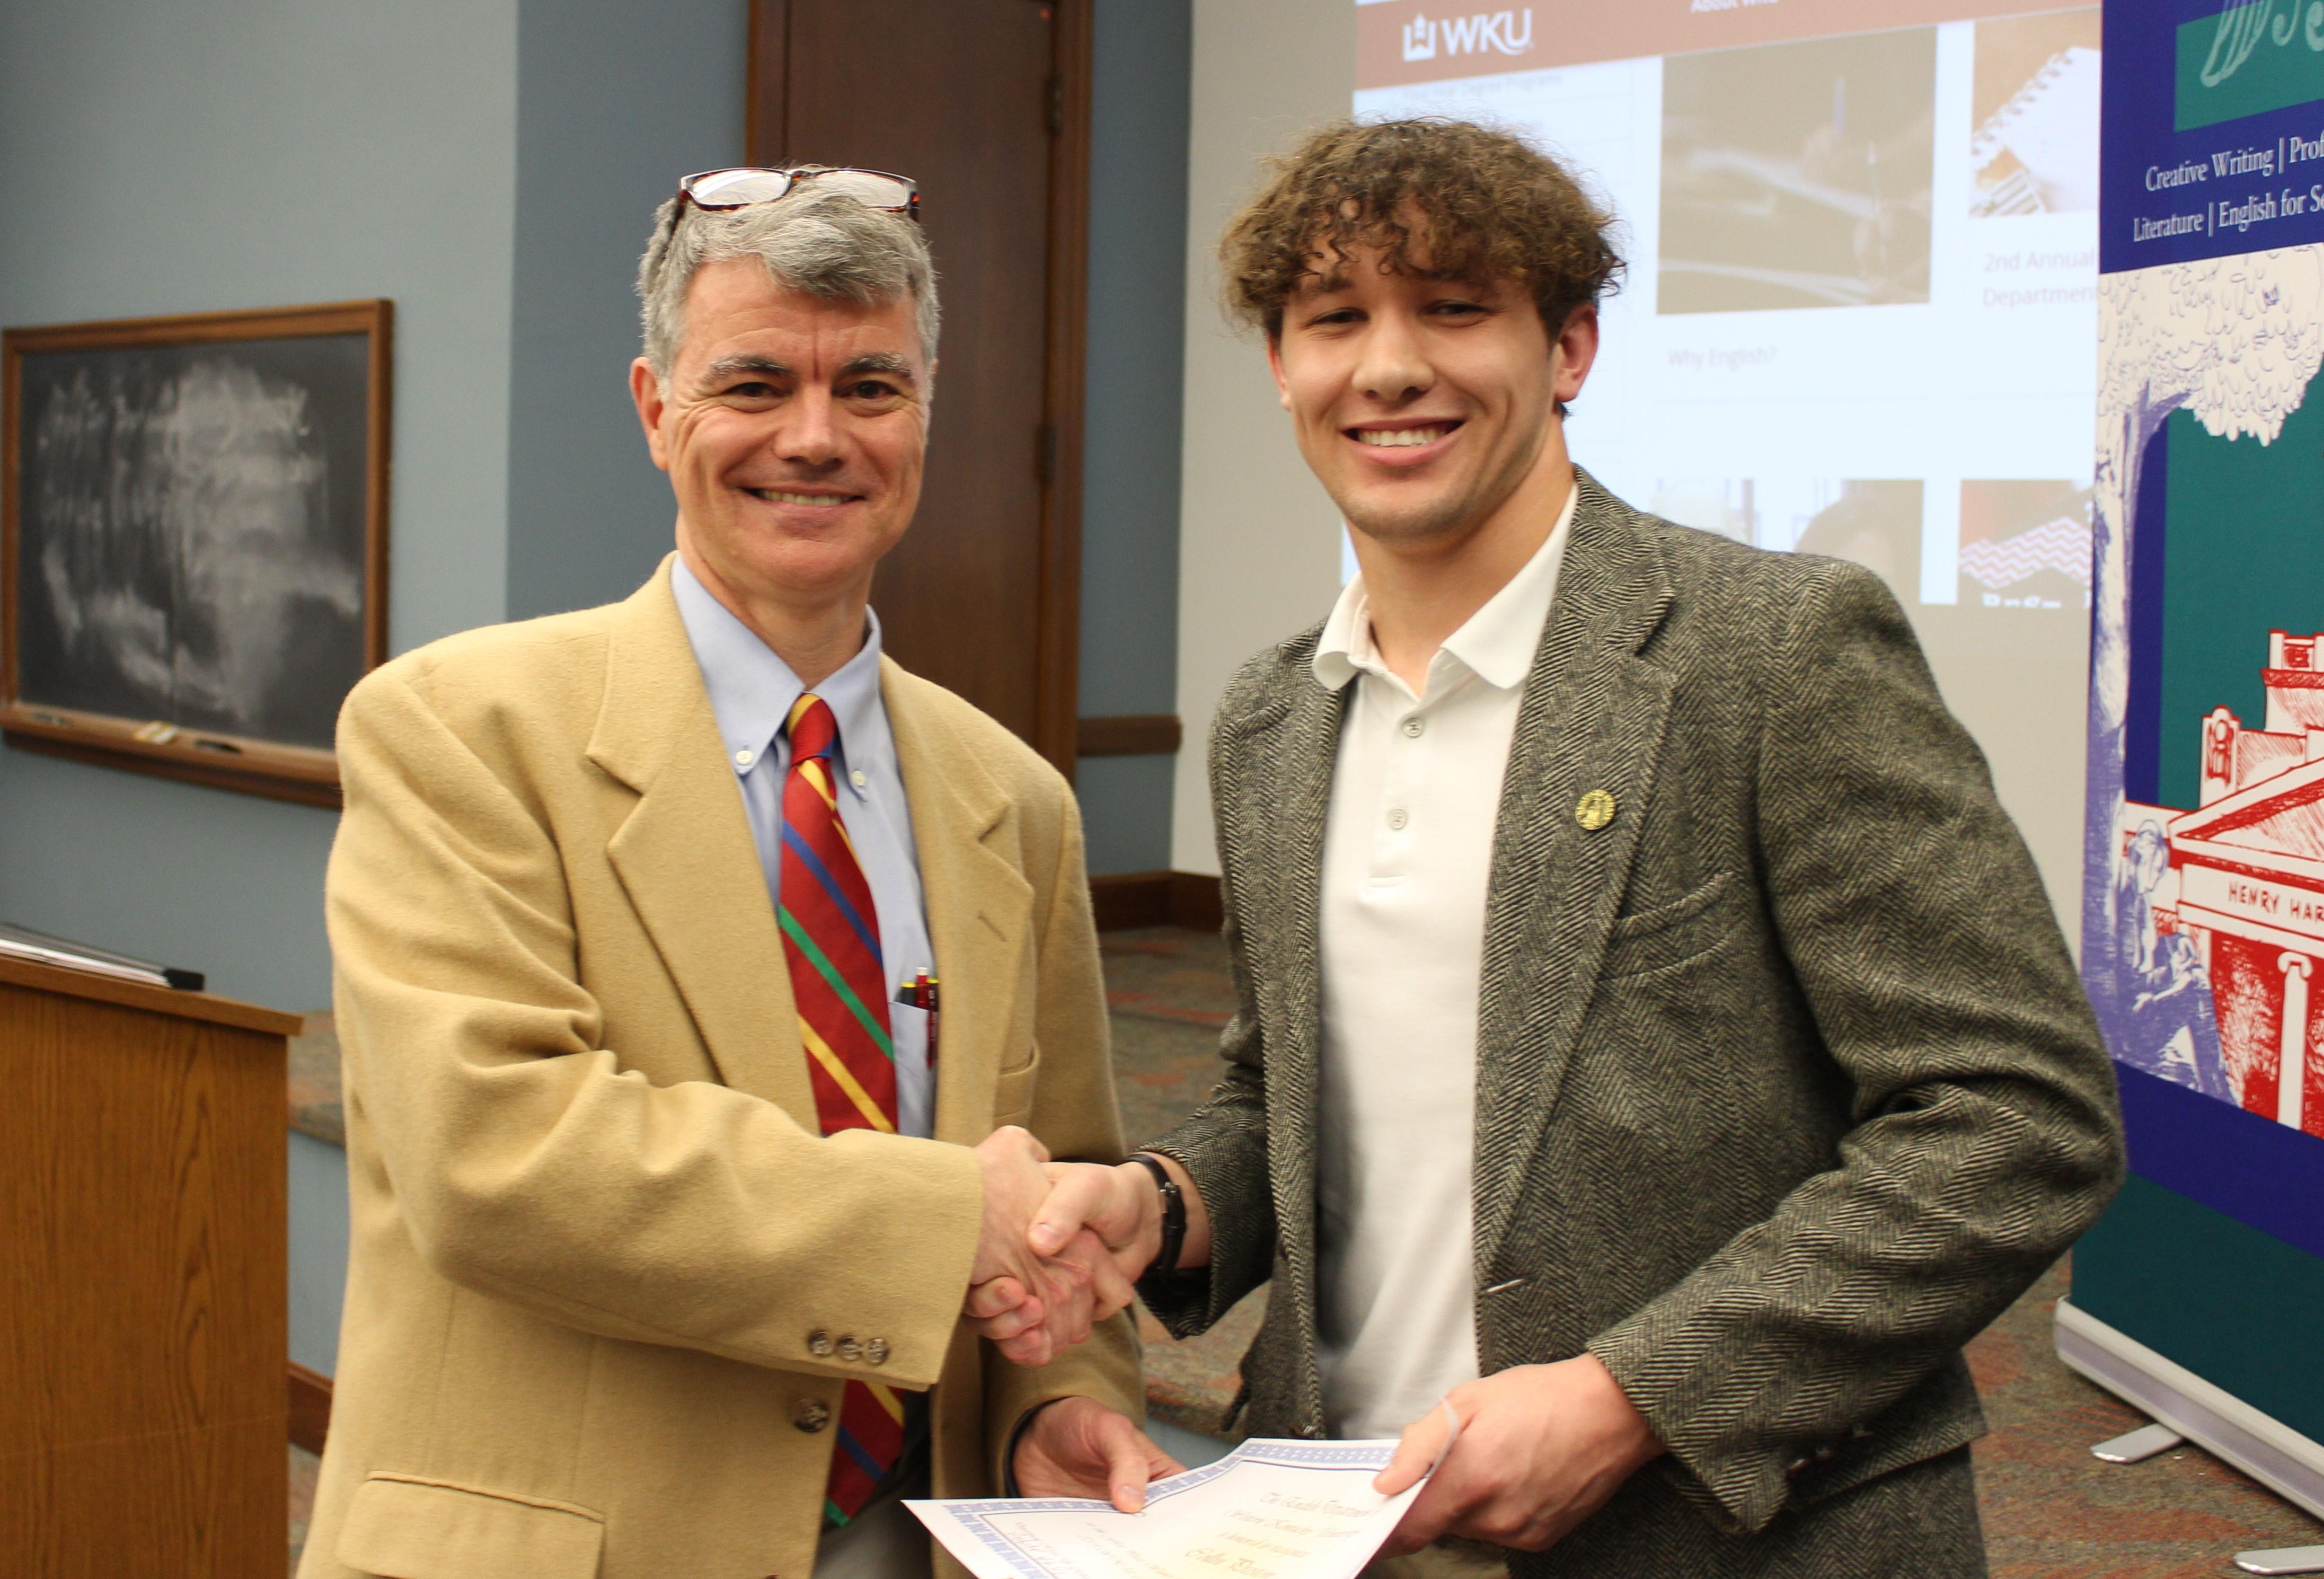 Dr. Hale shaking hands with 1st place Creative Writing winner, Collin Preston